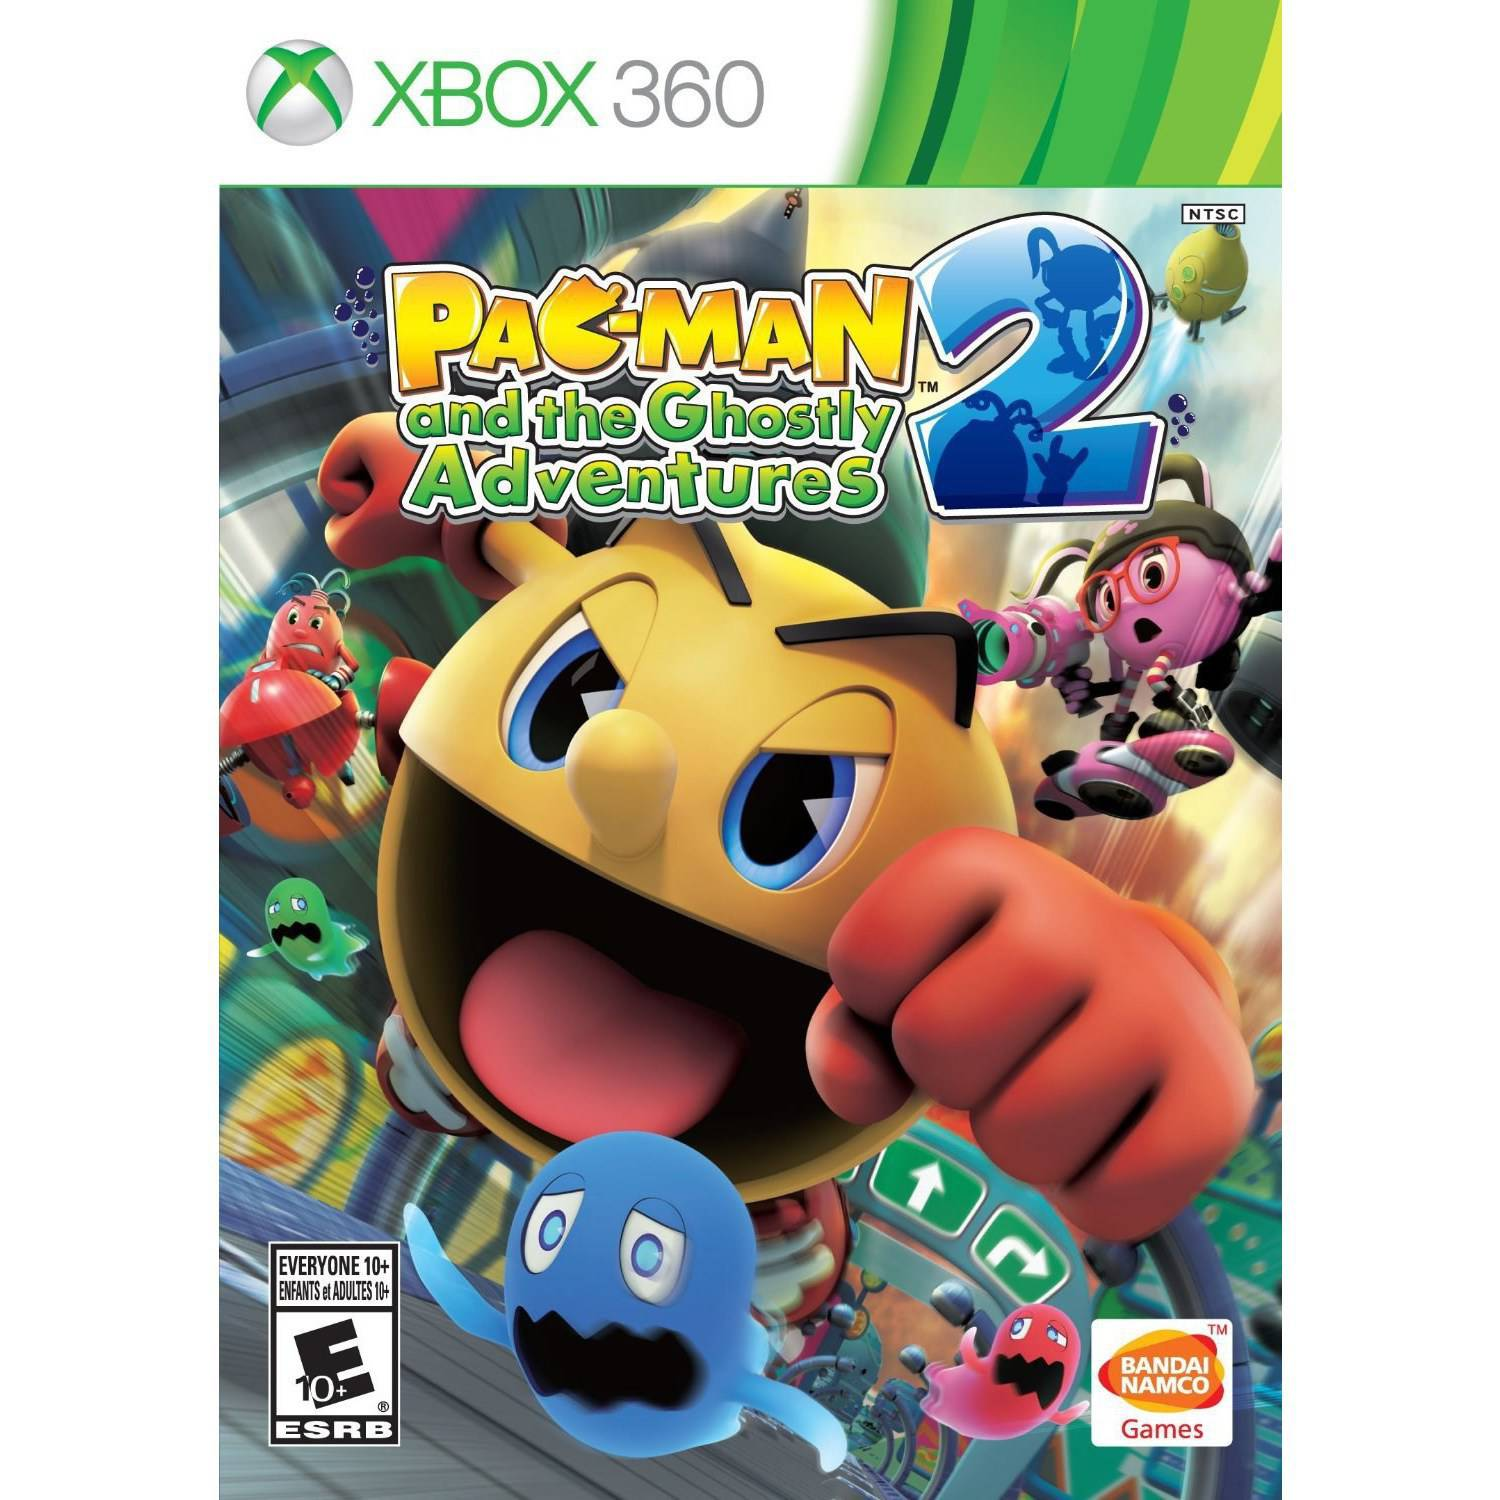 Pac-Man Ghostly Adventures 2 (Xbox 360) - Pre-Owned